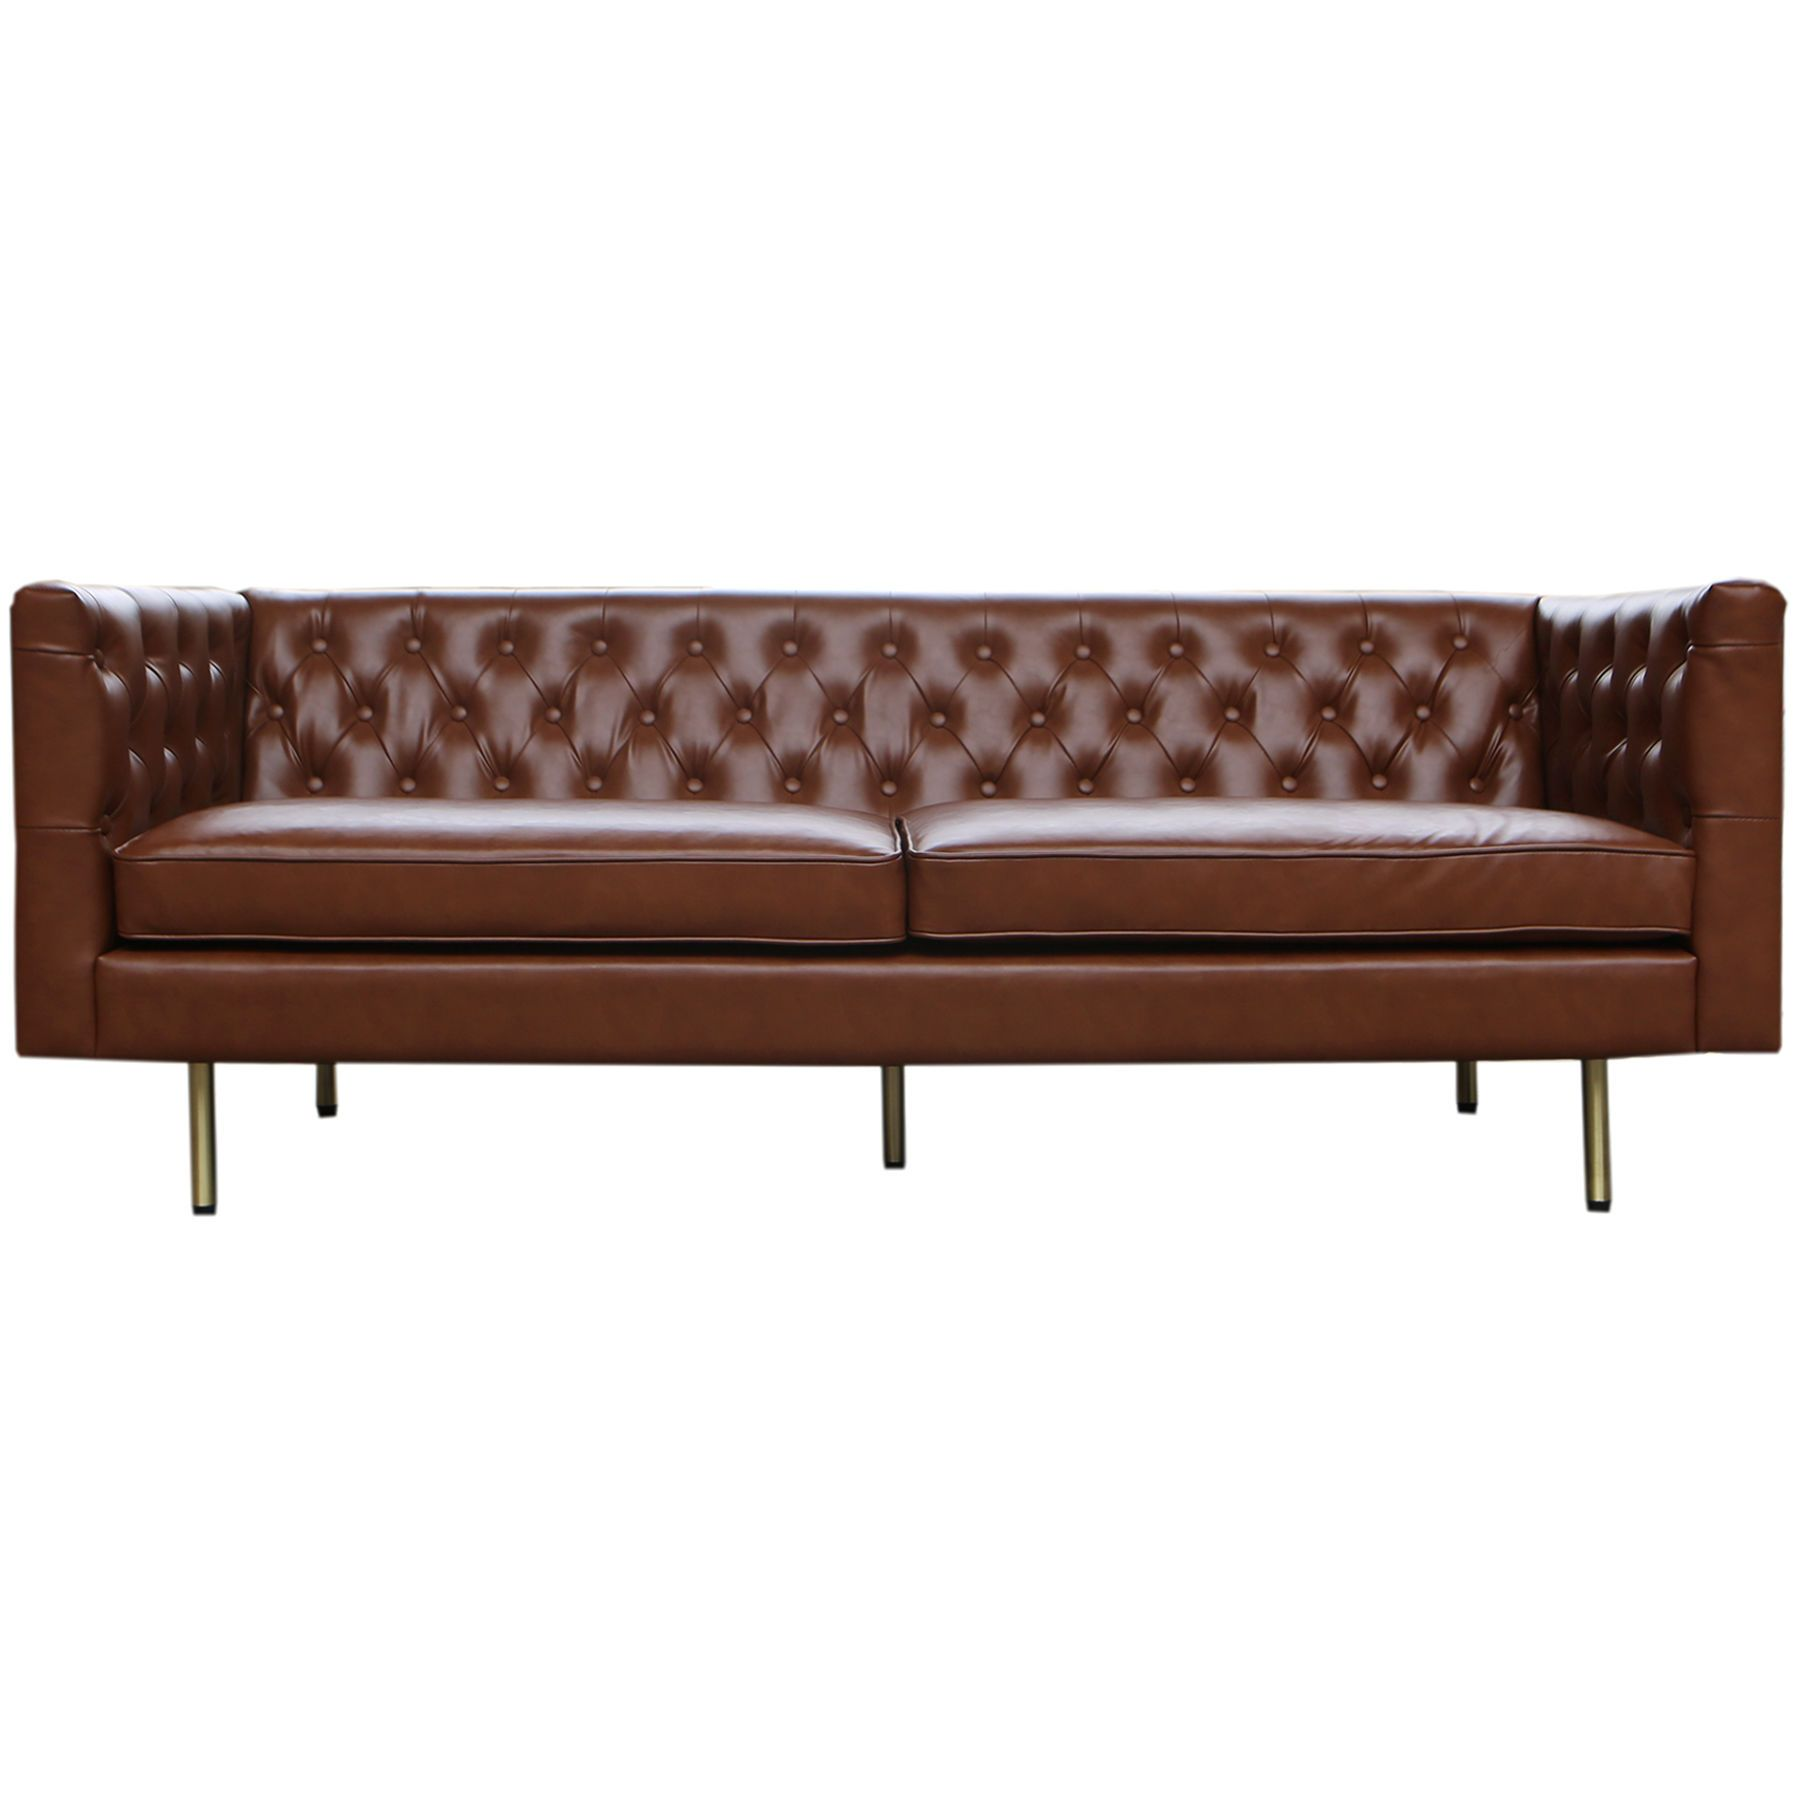 Hailey Tufted Sofa Affordable Sofas Living Styles At Home